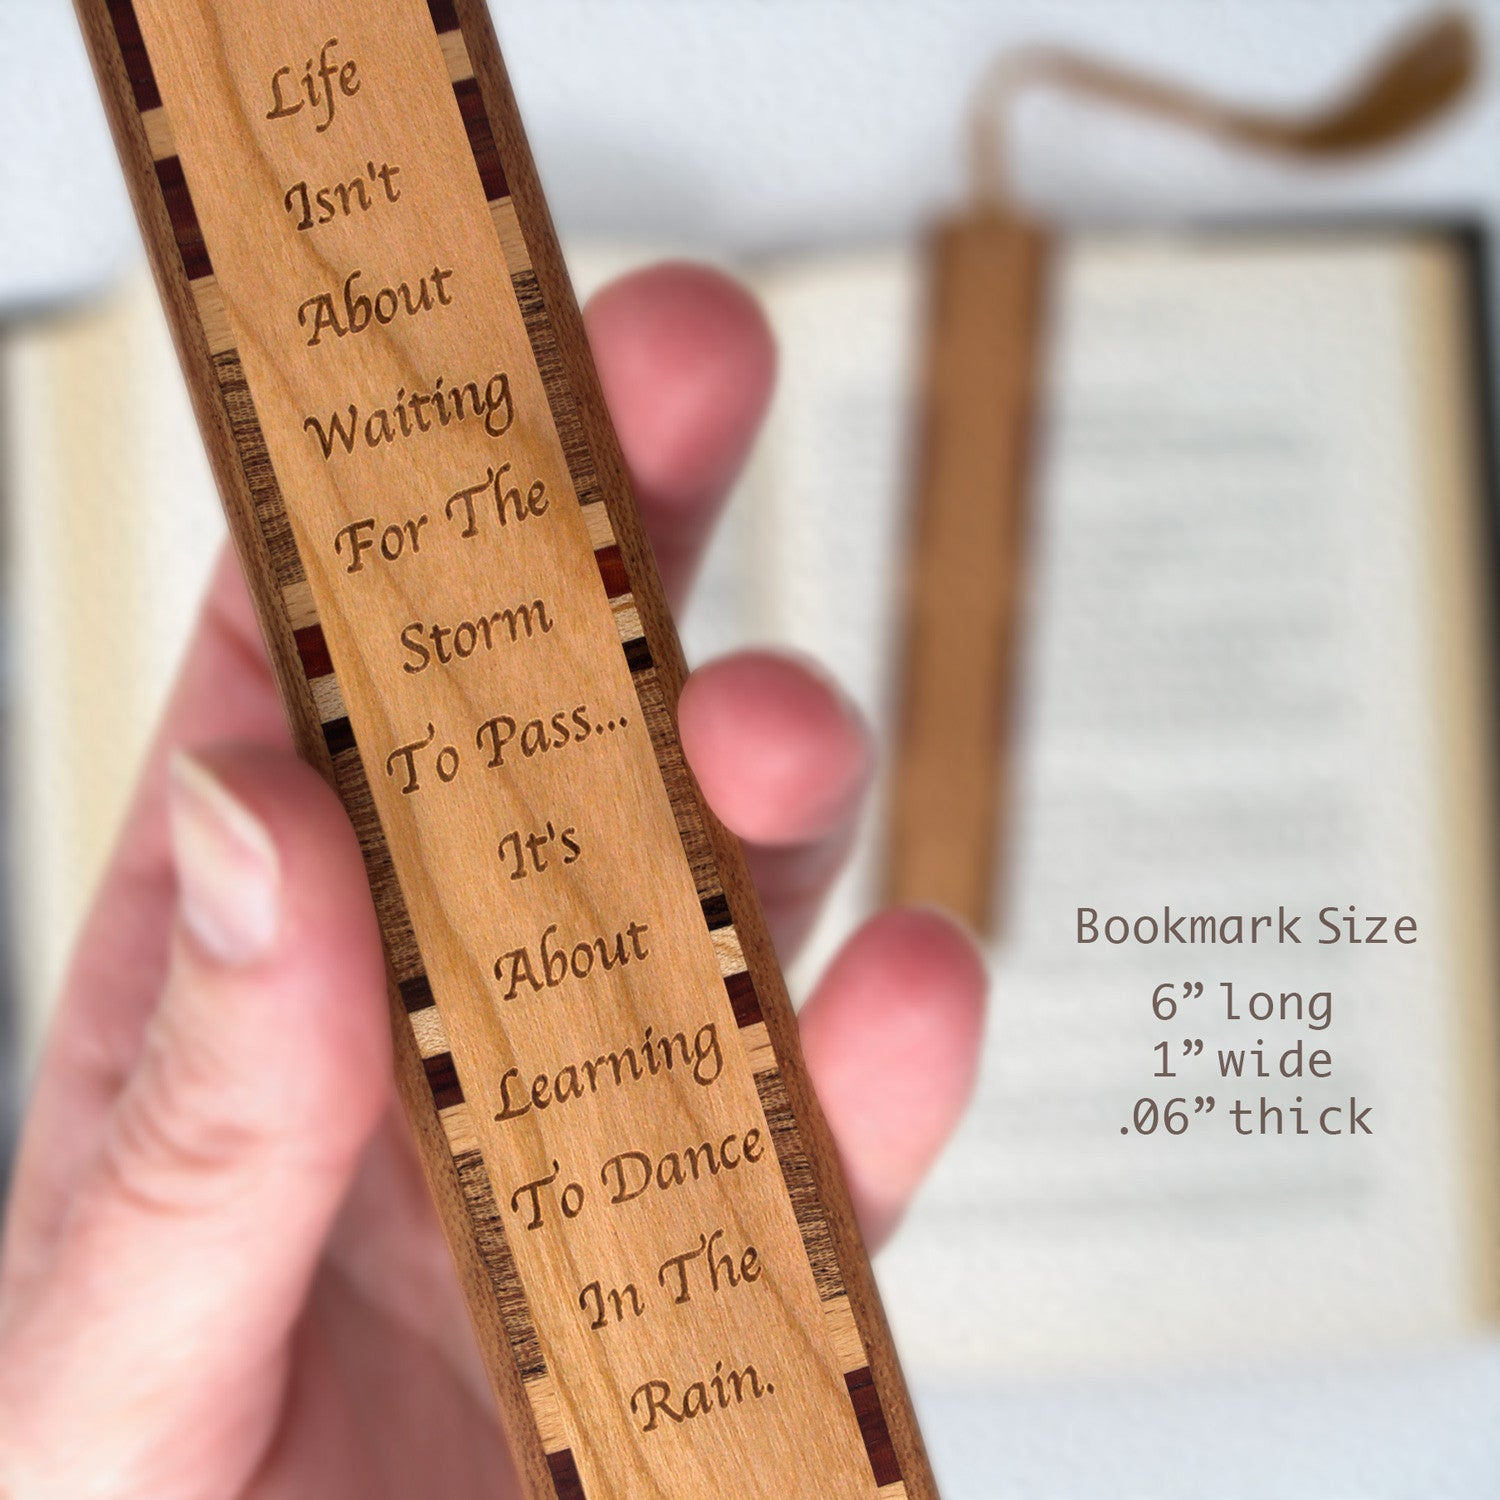 Learn To Dance In The Rain Quote Engraved Wood Bookmark With Inlays